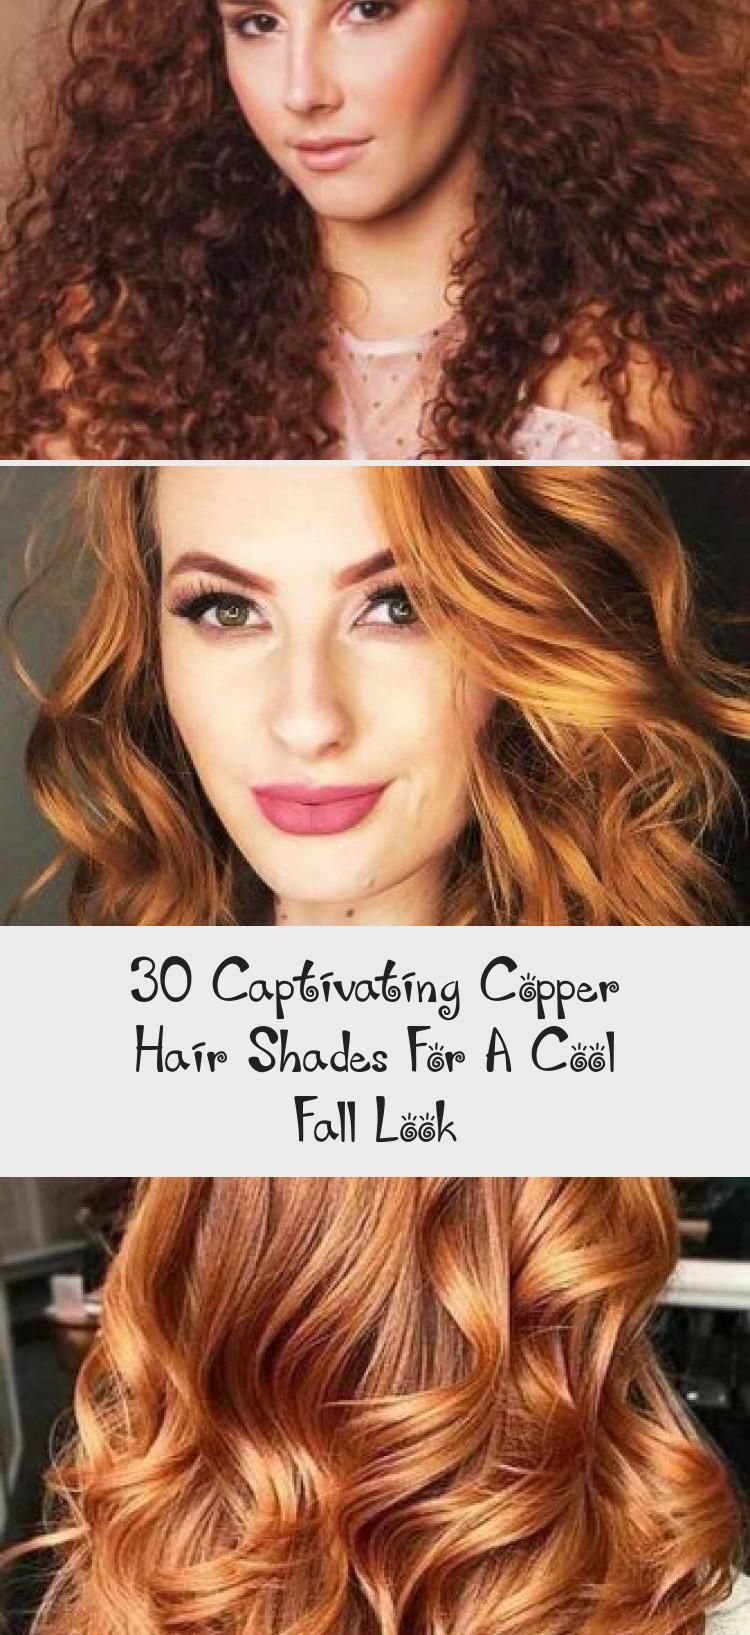 30 Captivating Copper Hair Shades For A Cool Fall Look Pinokyo